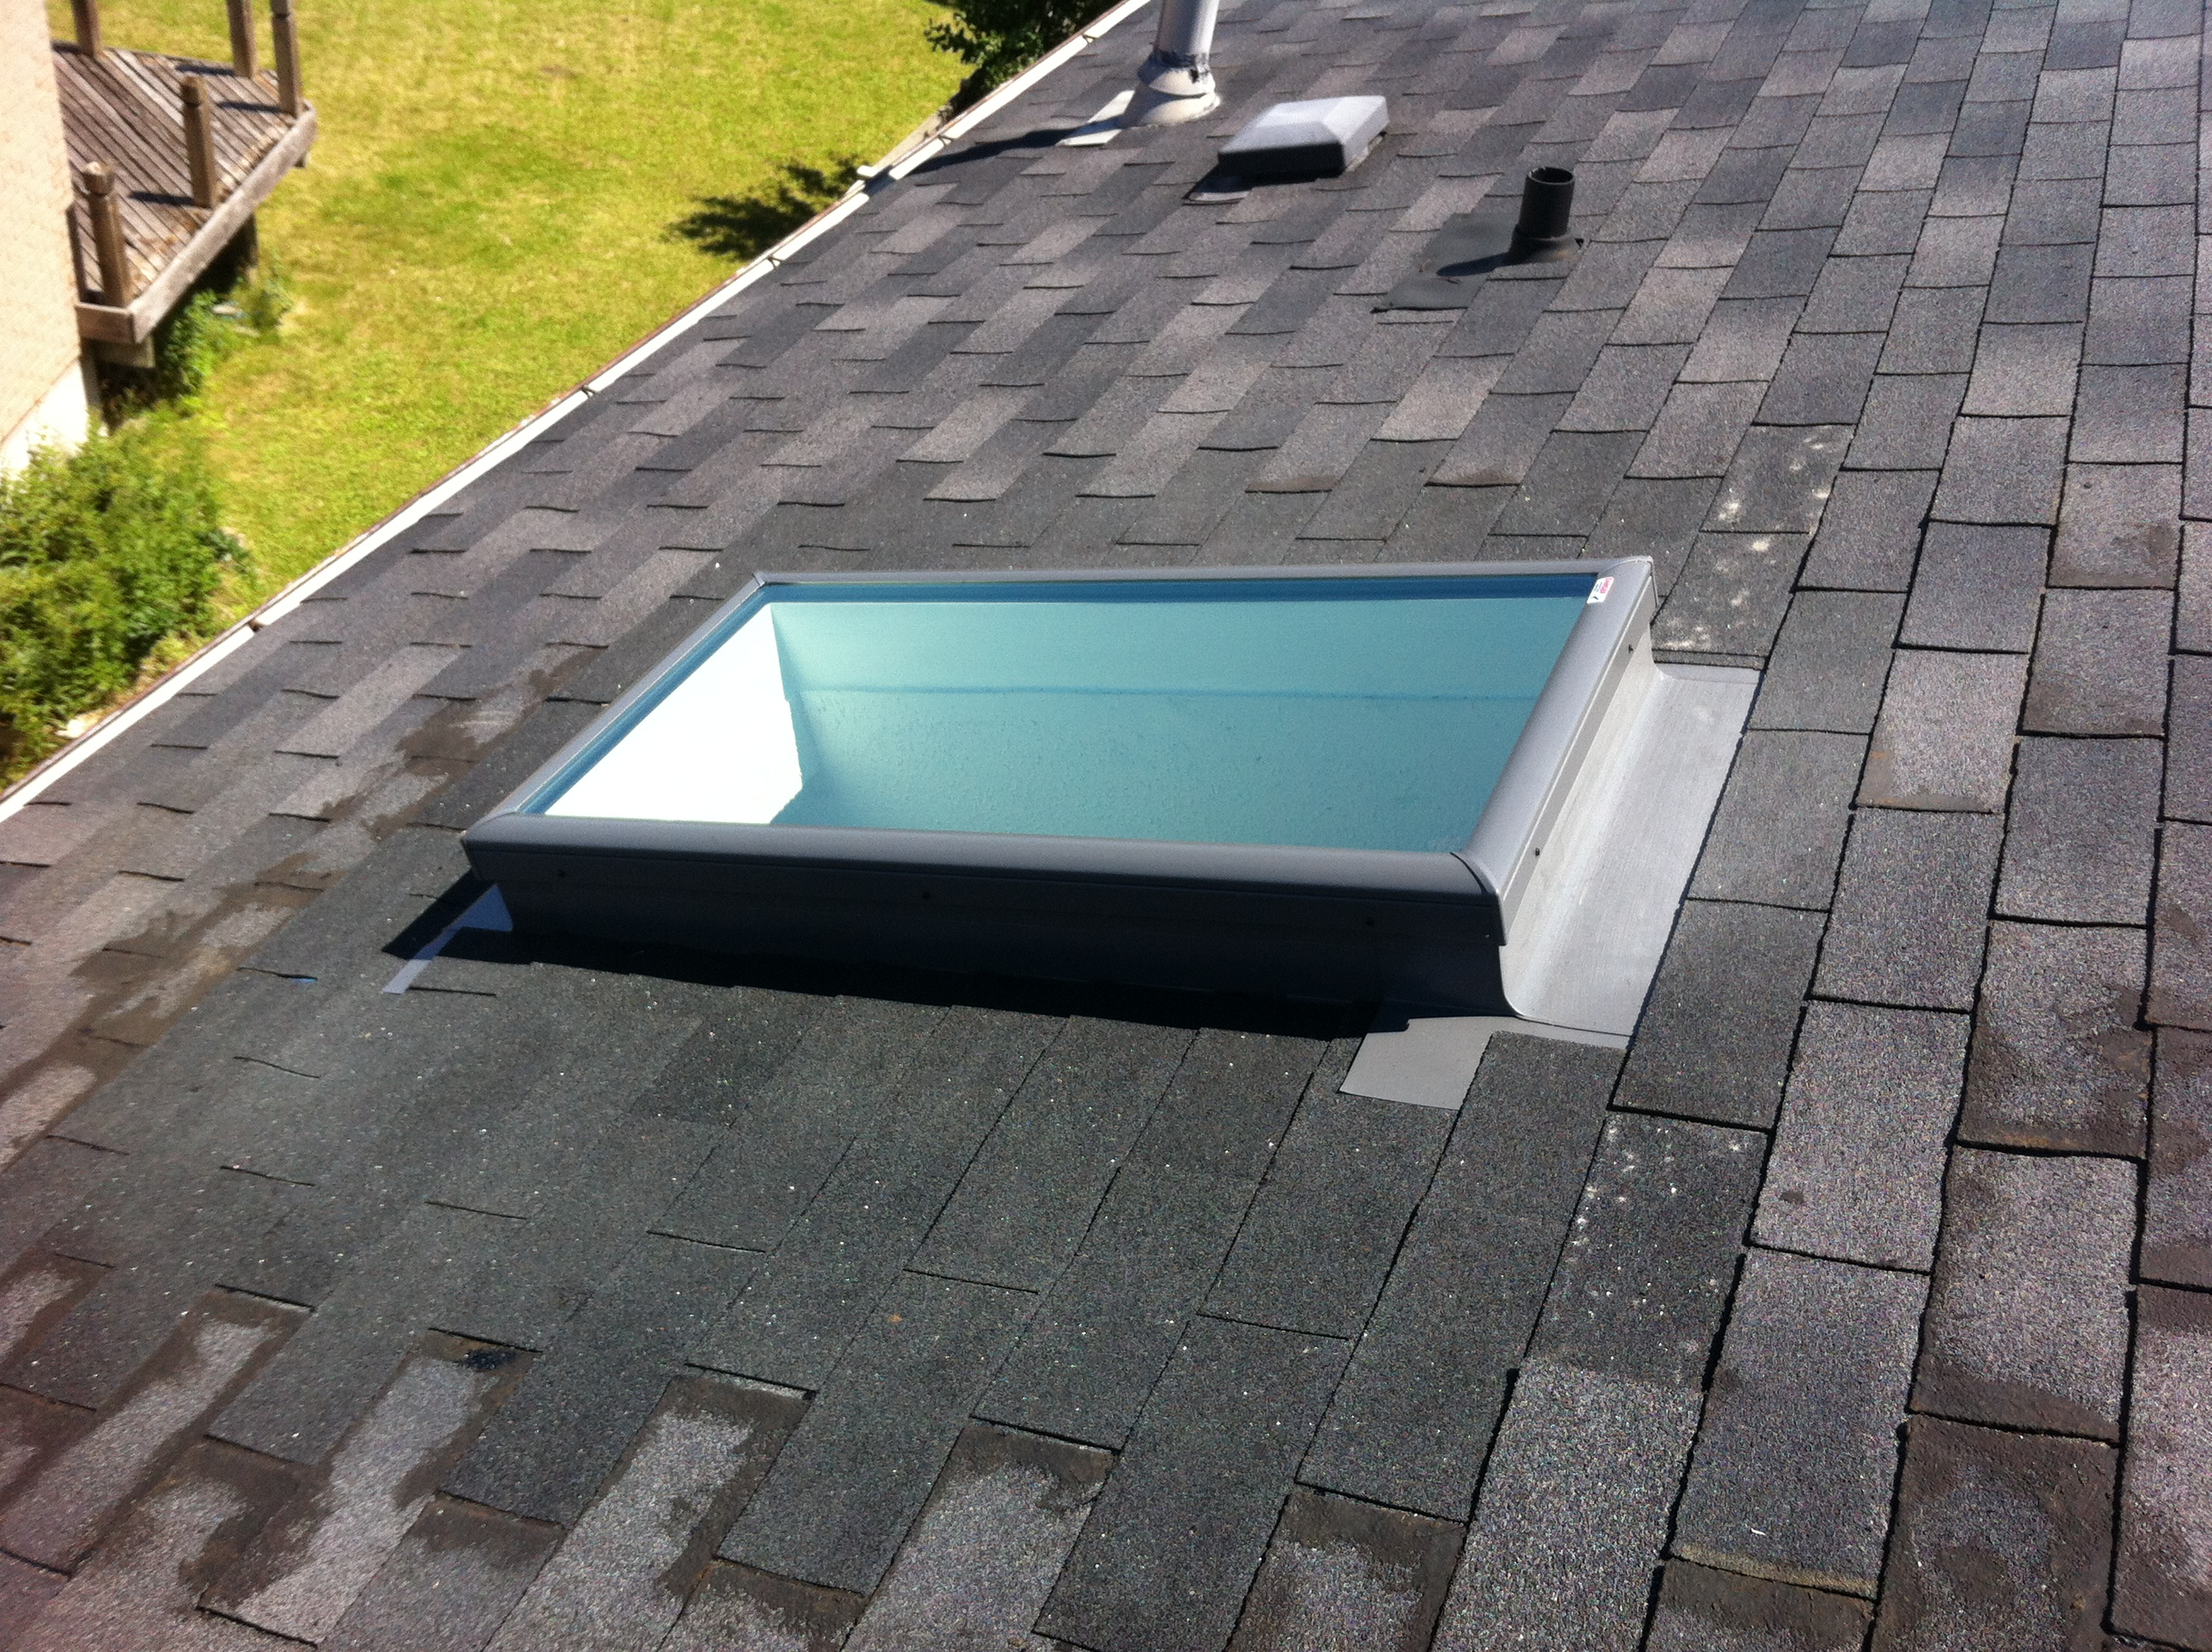 Velux Curb Mount Skylight